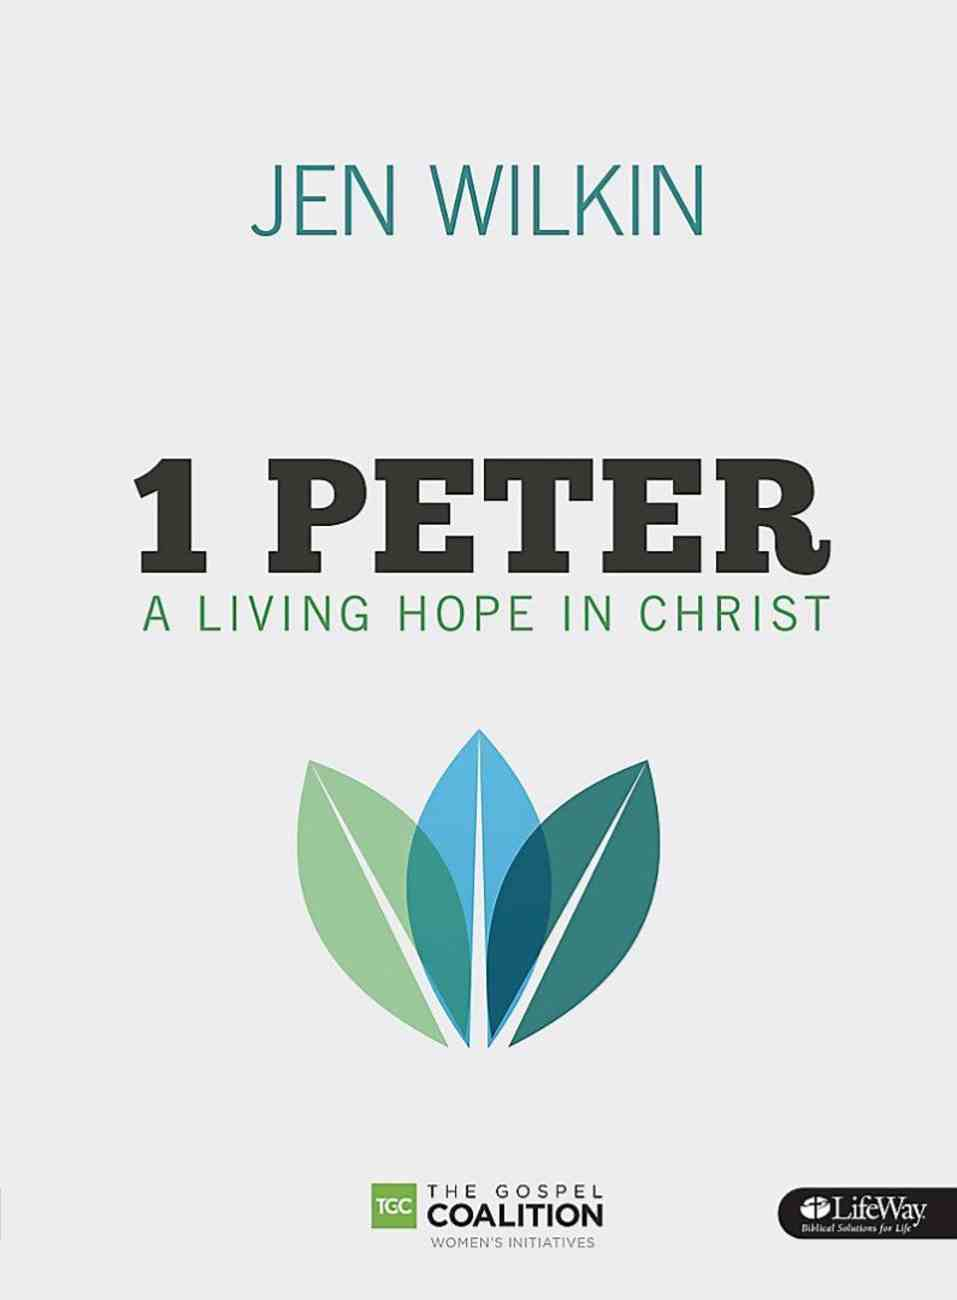 1 Peter (2 Dvds): A Living Hope in Christ (Dvd Only Set) DVD